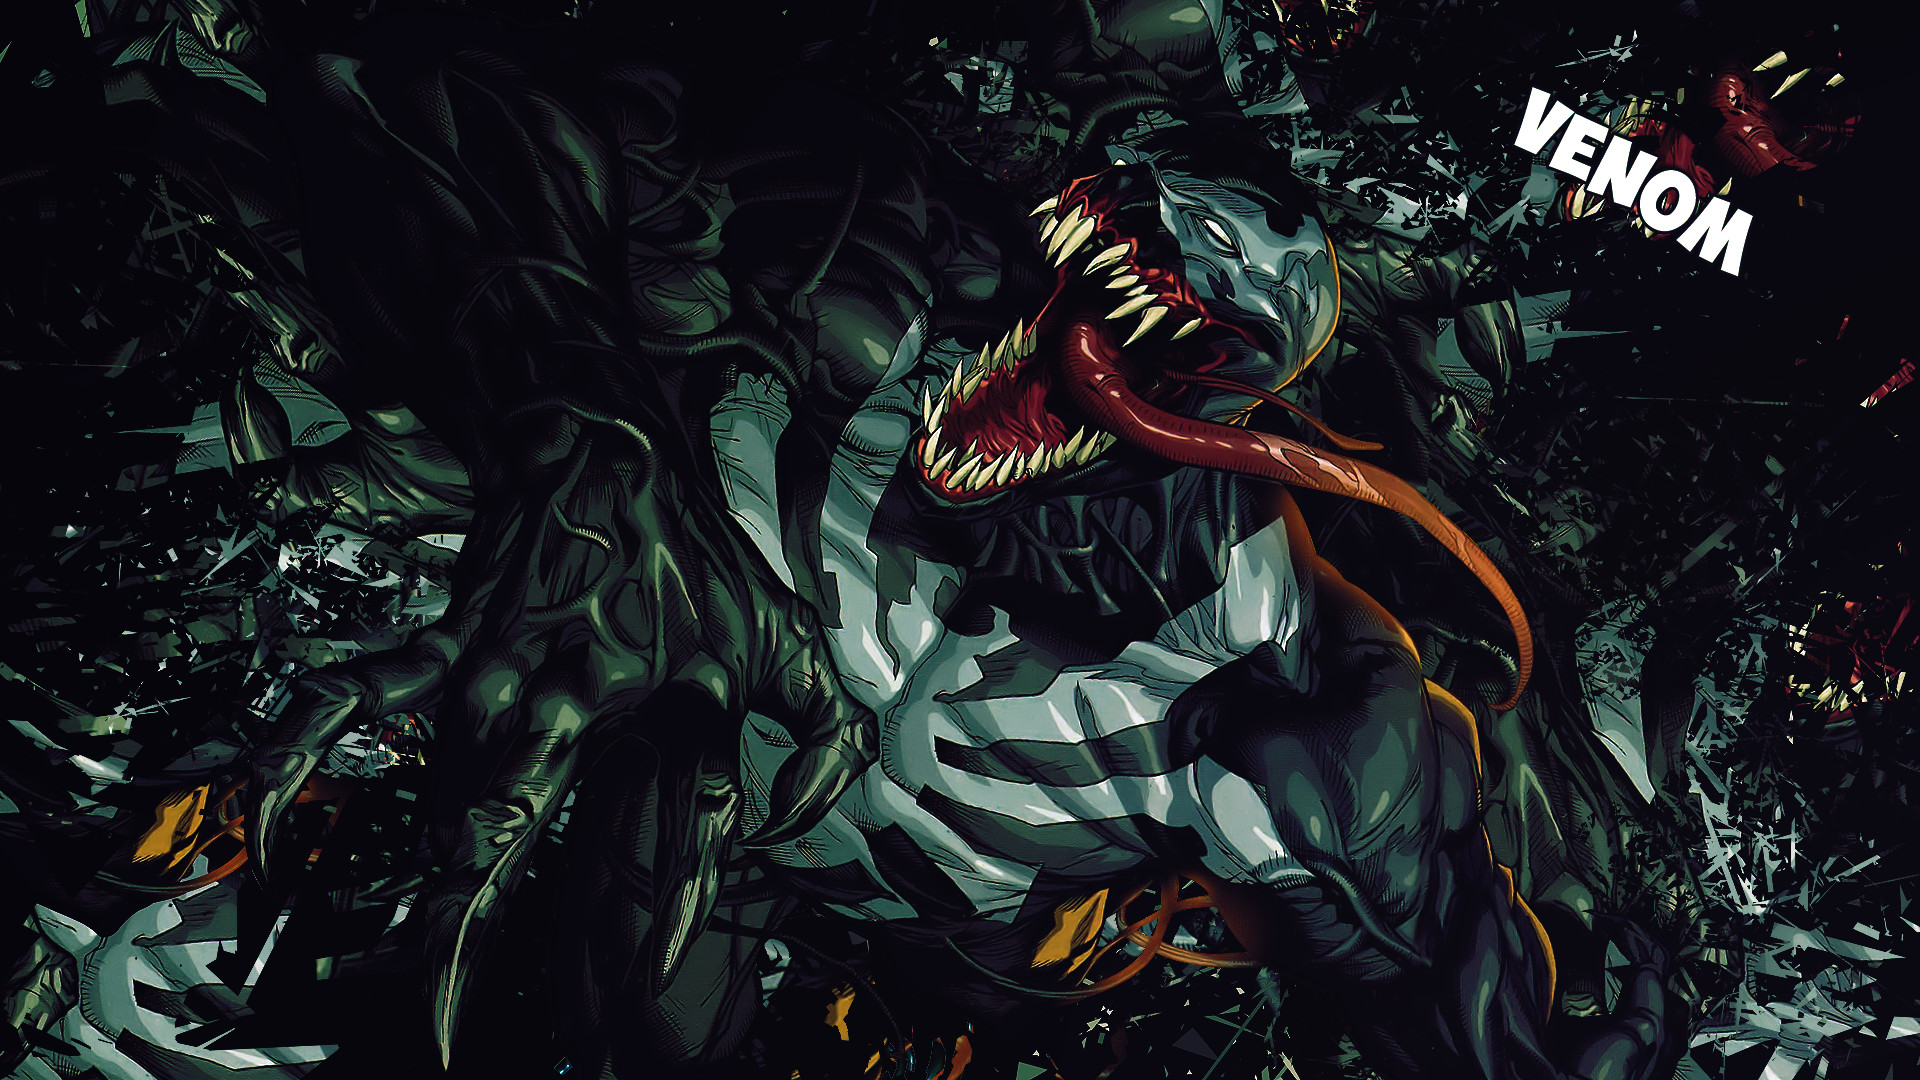 1920x1080 Venom HD Wallpapers for desktop download